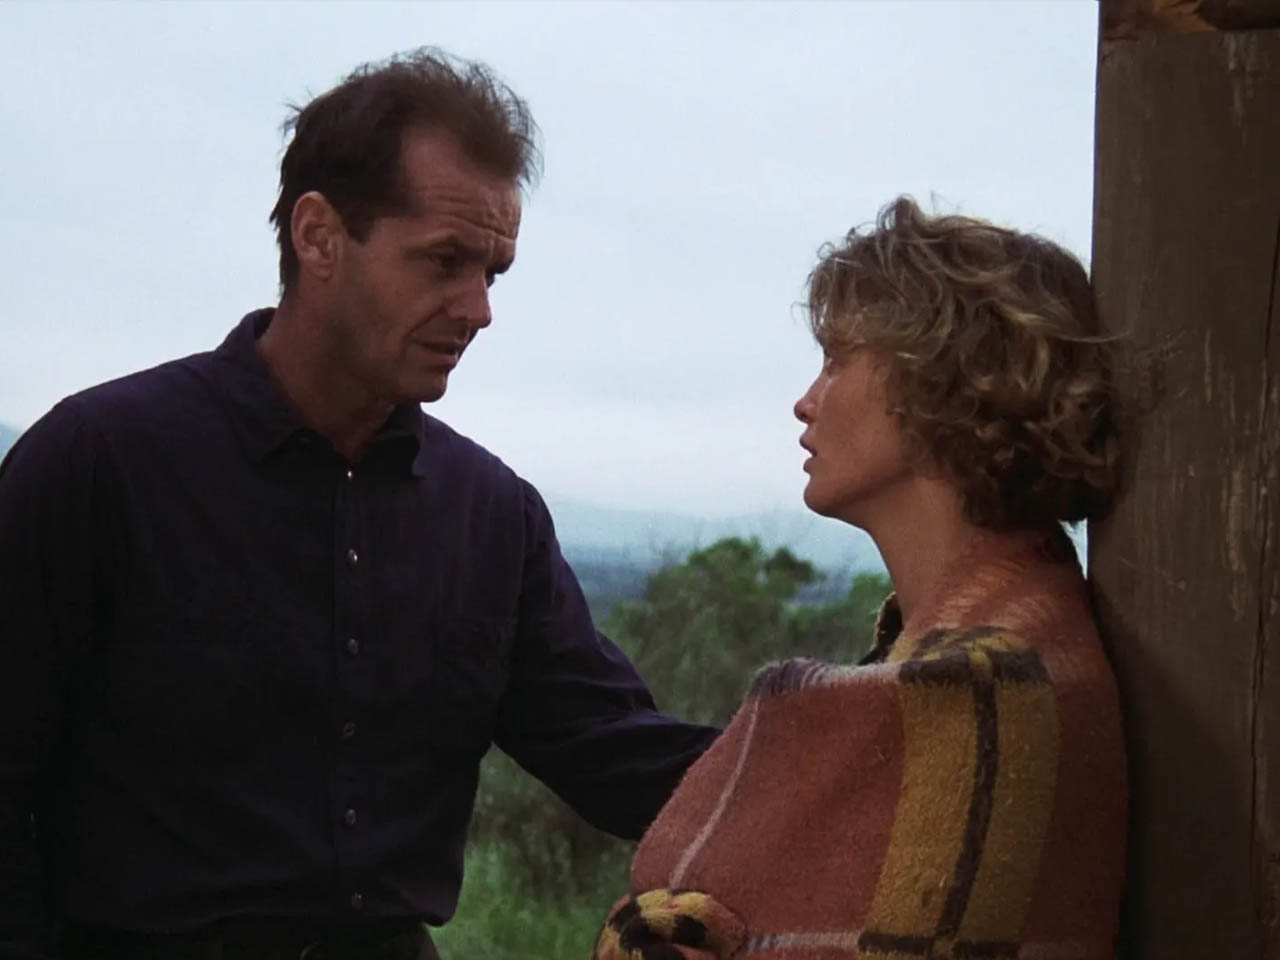 1981 Movie Project - The Postman Always Rings Twice - 01